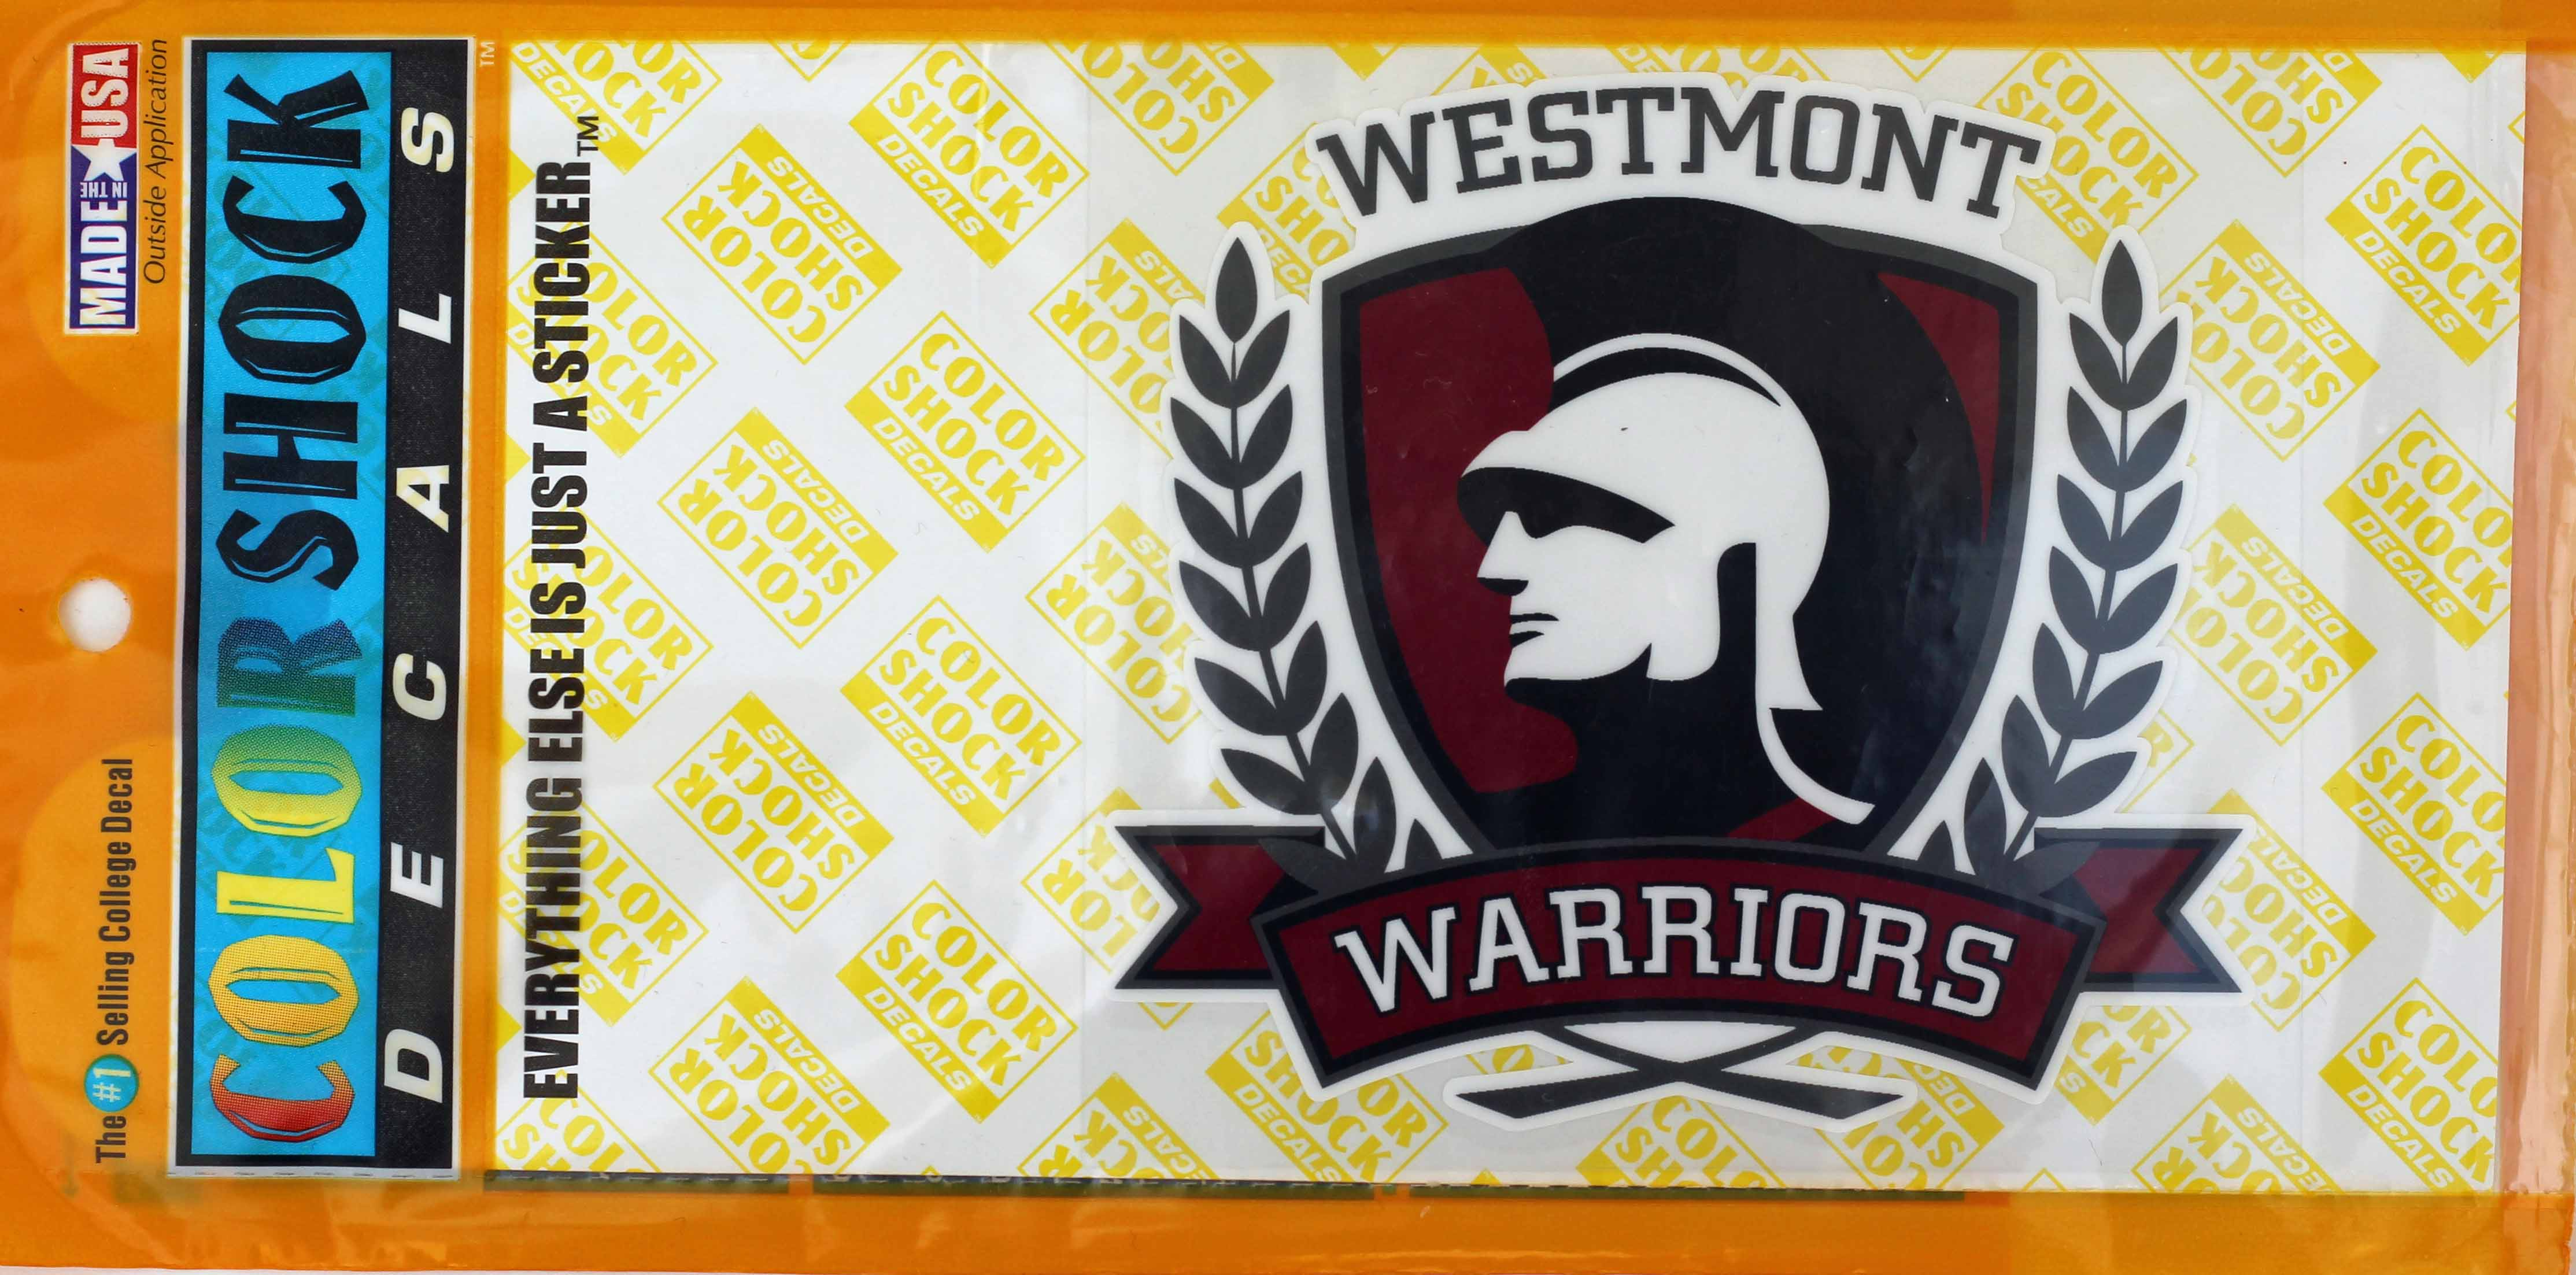 Image for the Color Shock Westmont Warrior  Decal product